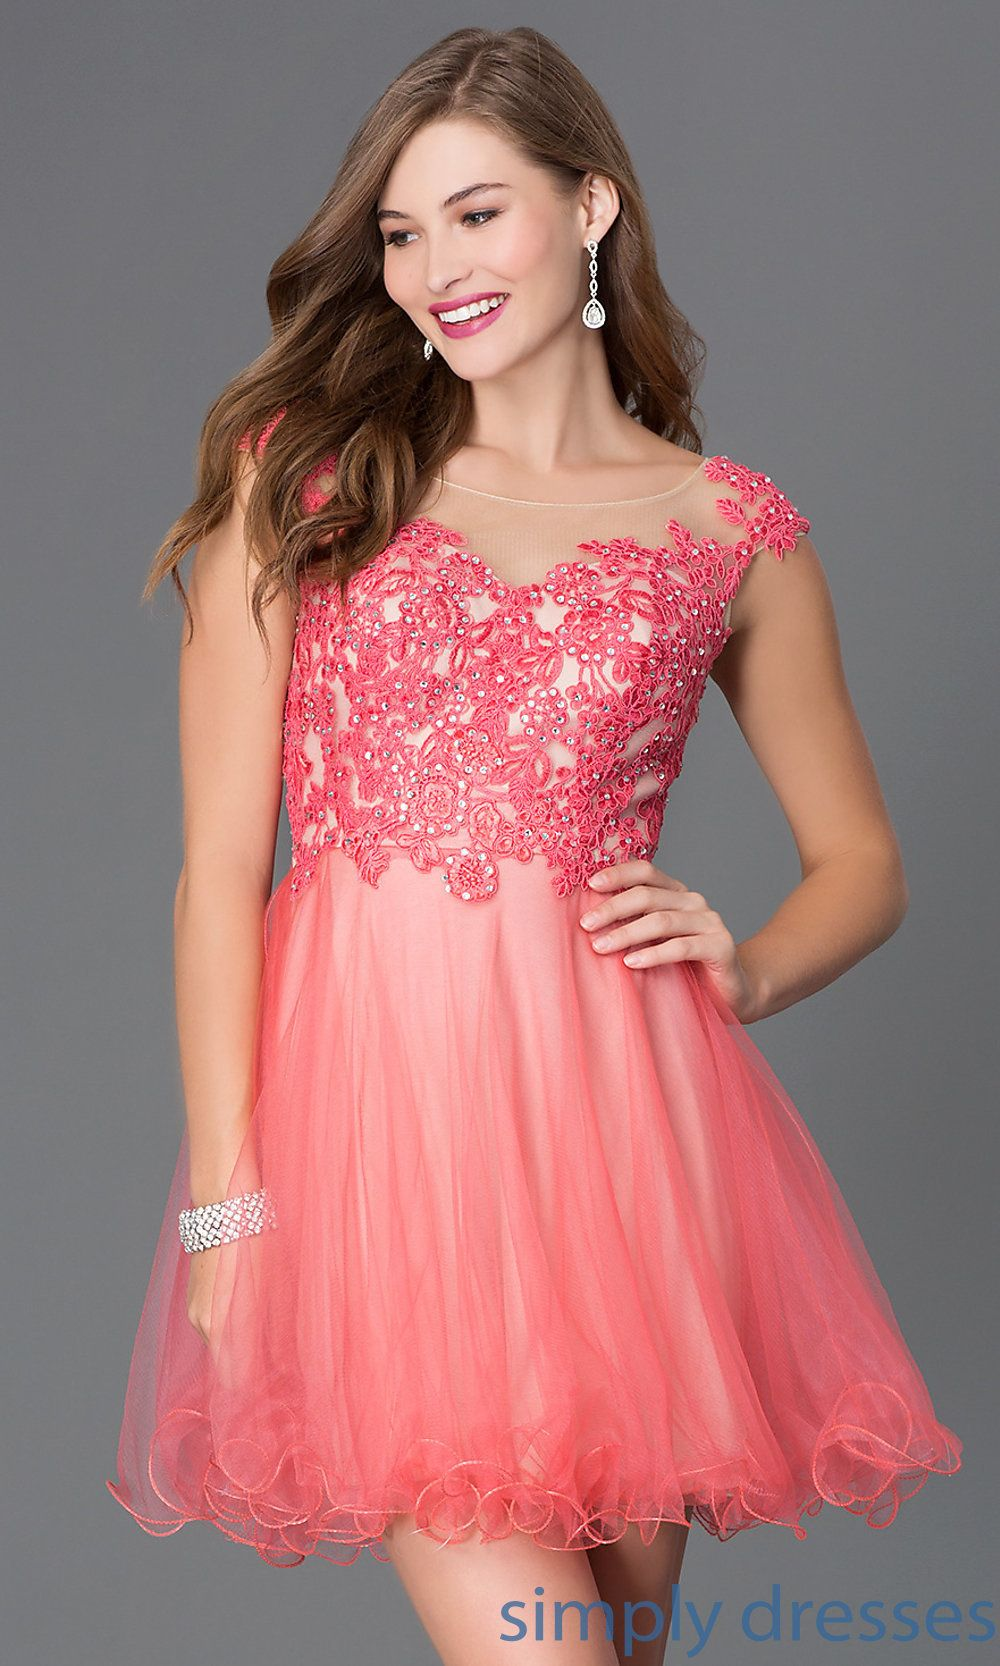 Short Coral-Pink Illusion-Lace Baby Doll Dress